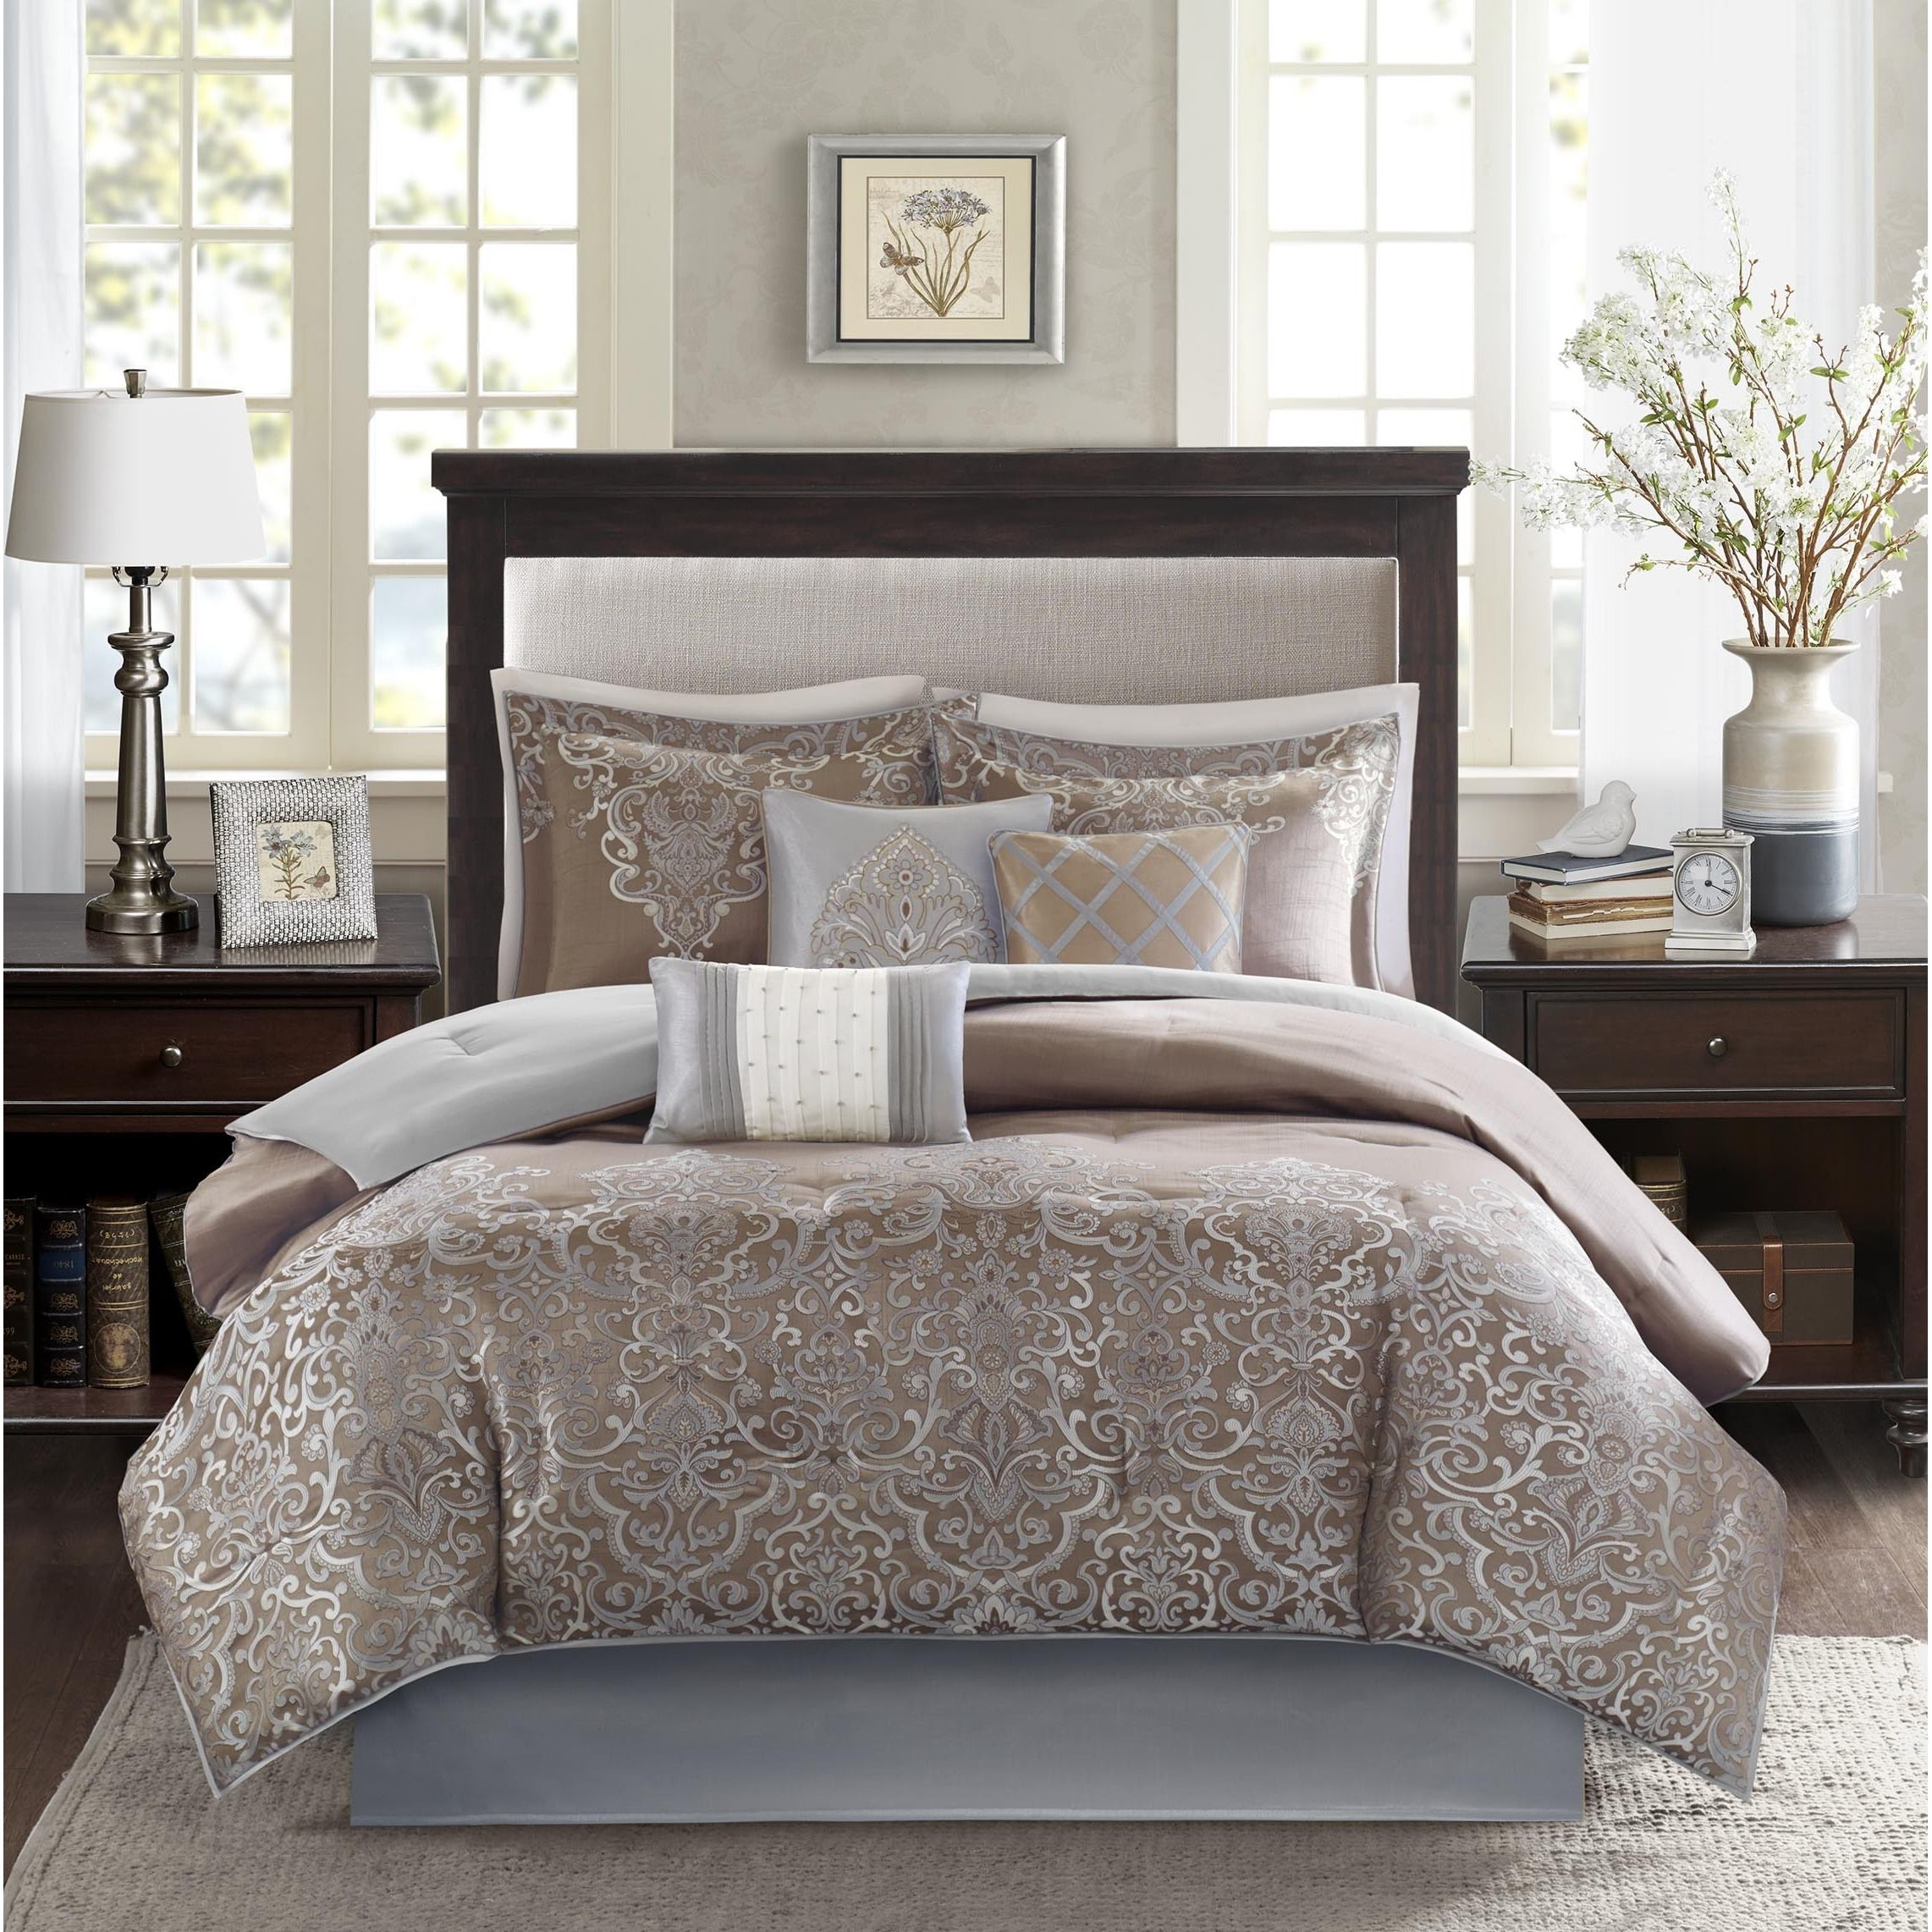 Create an opulent look in your master bedroom with the Madison Park